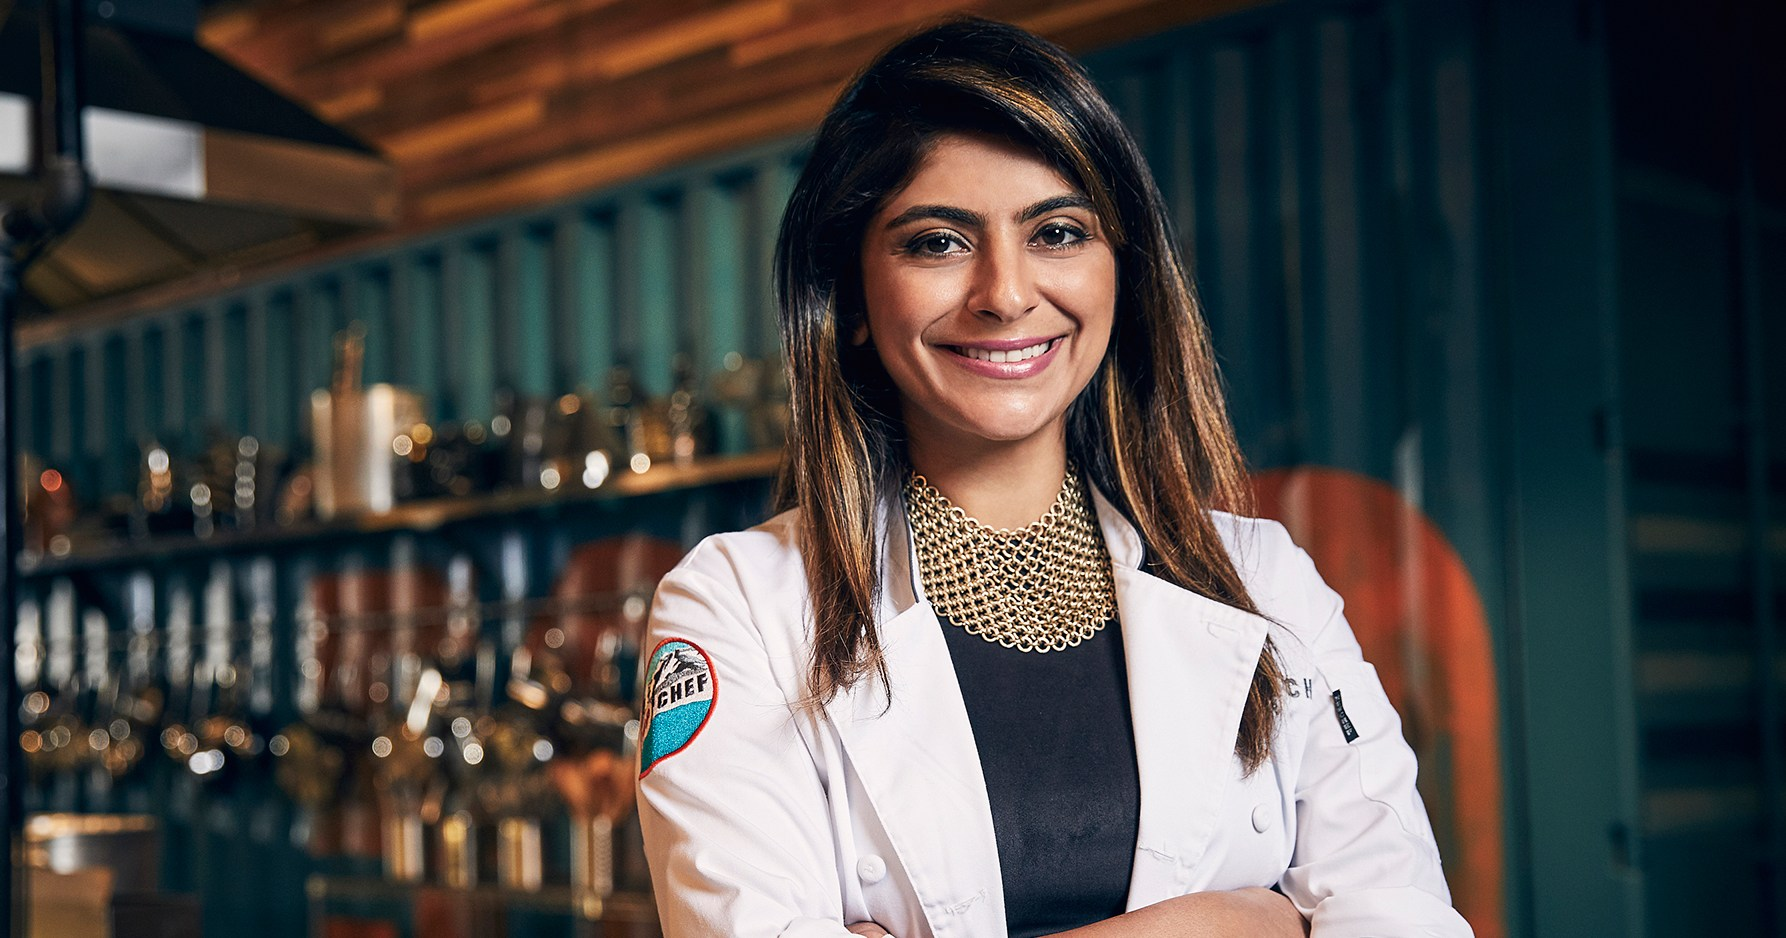 Top Chef's Fatima Ali Reveals Her Cancer Has Returned: 'I Have a Year to Live'